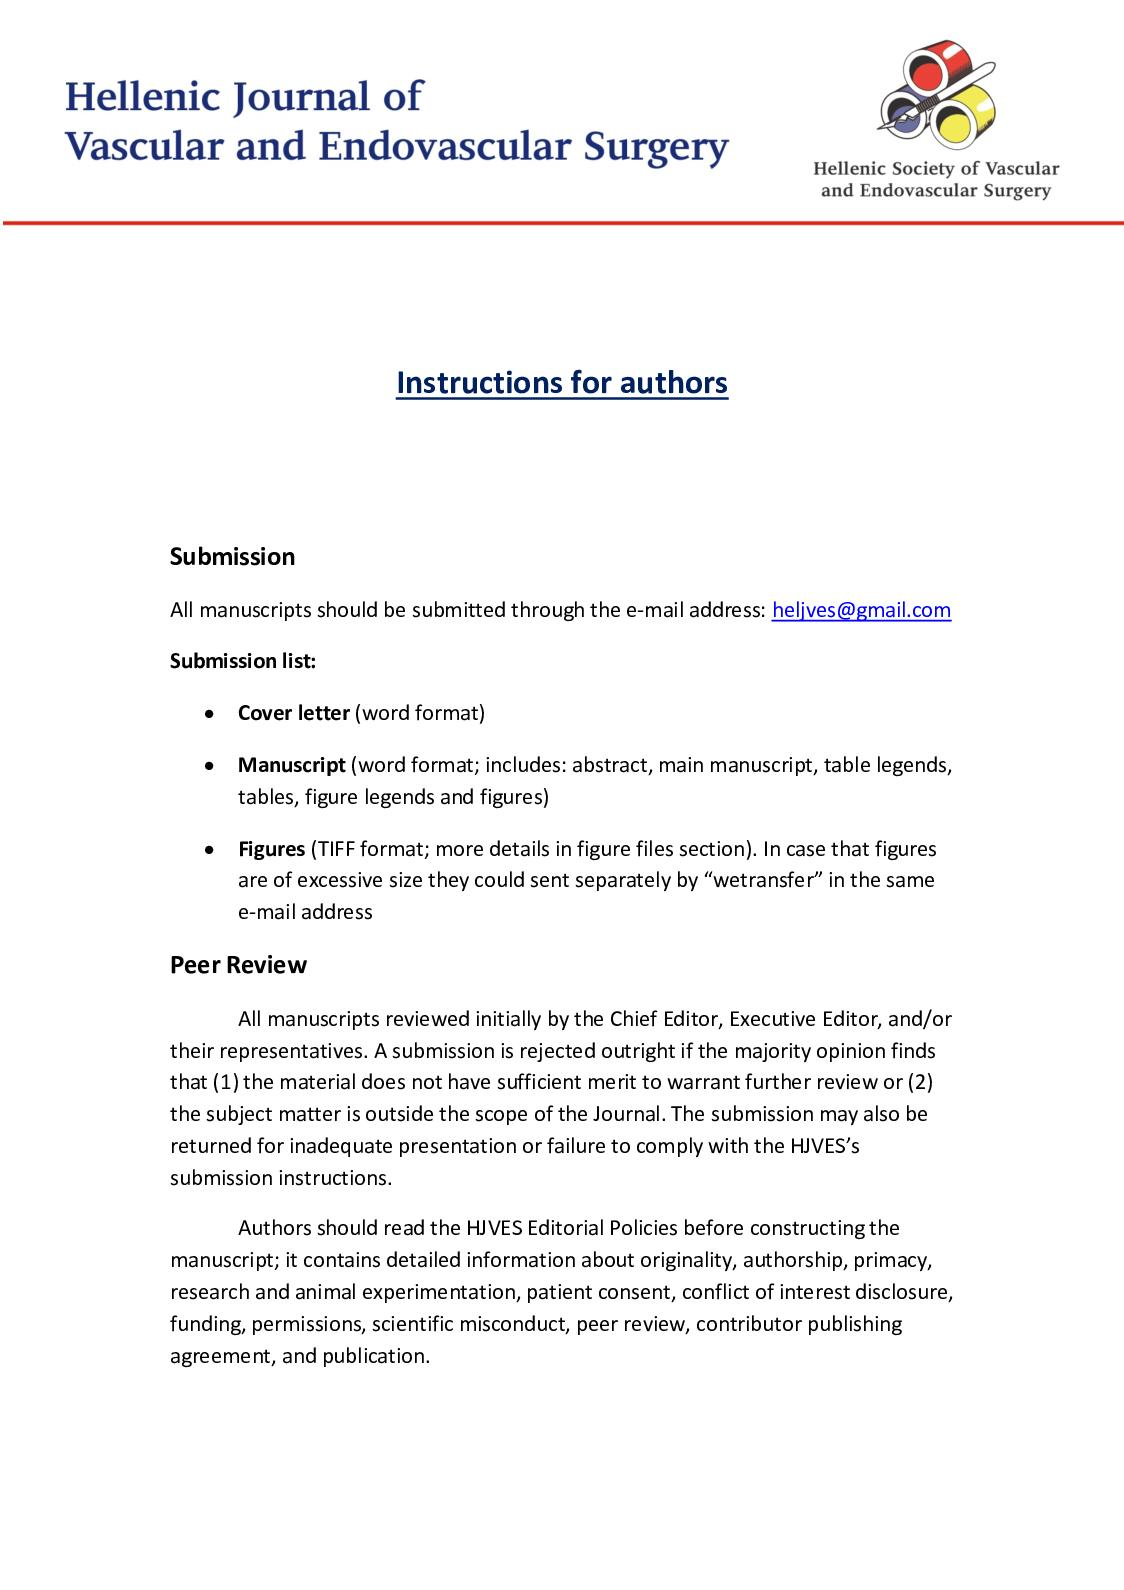 Executive Editor Cover Letter Calaméo Instructions For Authors